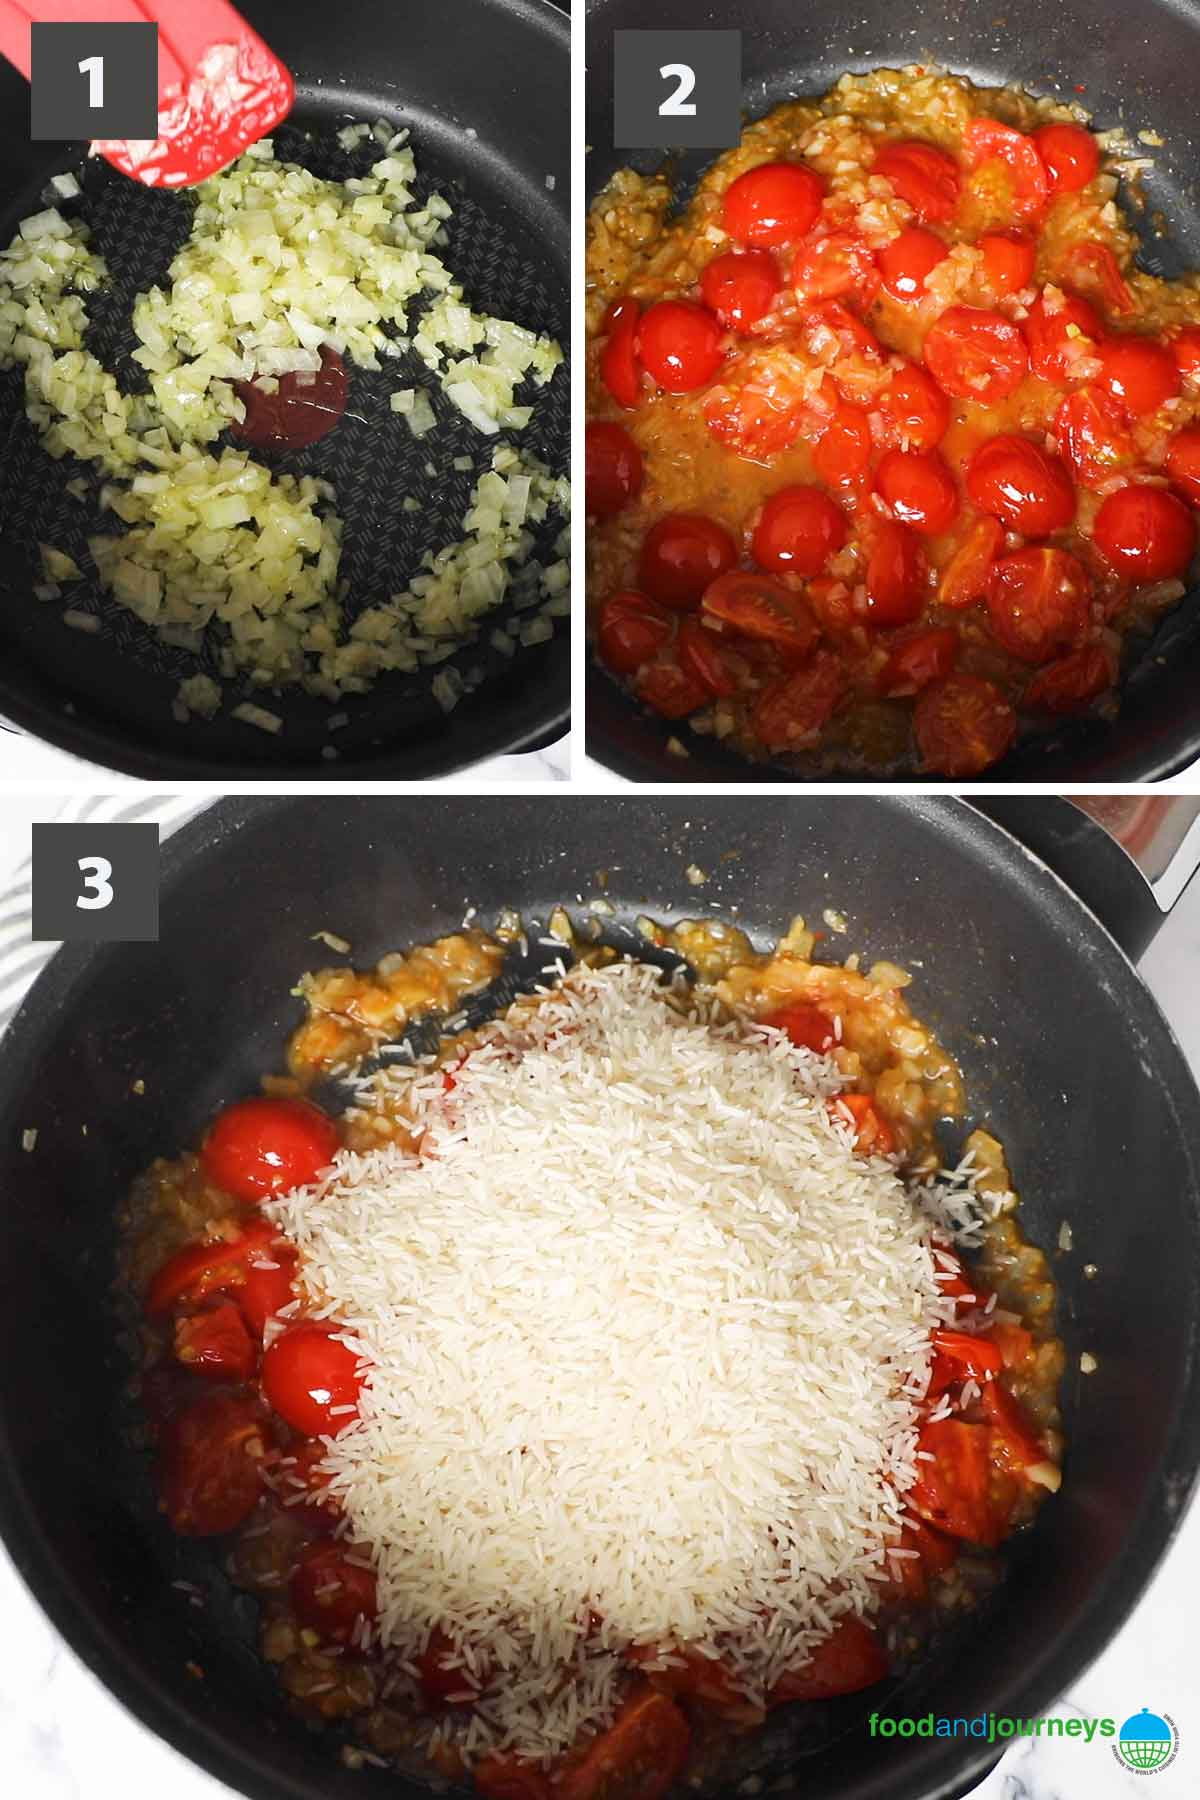 Jun2021, latest first part of a collage of images showing the step by step process of making arroz de tomate at home.